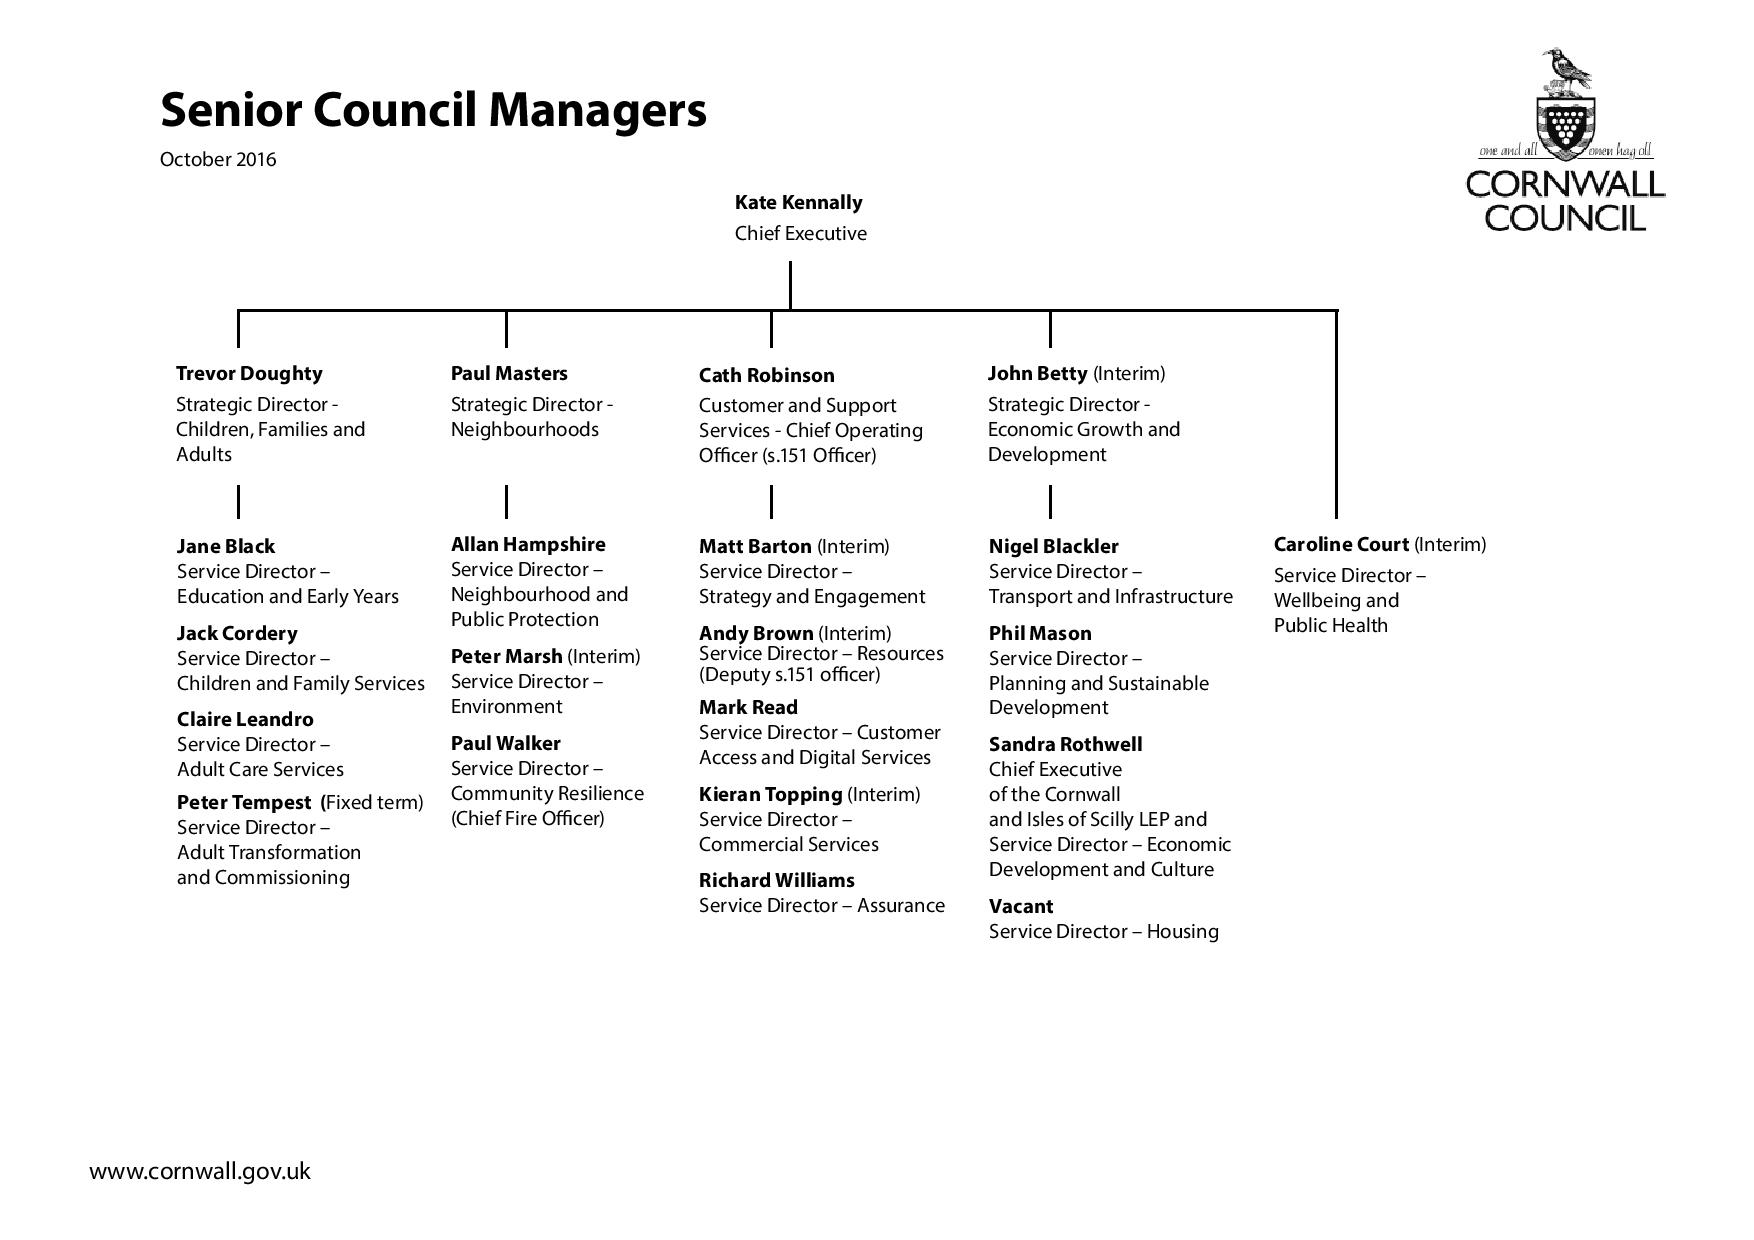 senior-council-managers-page-001.jpg